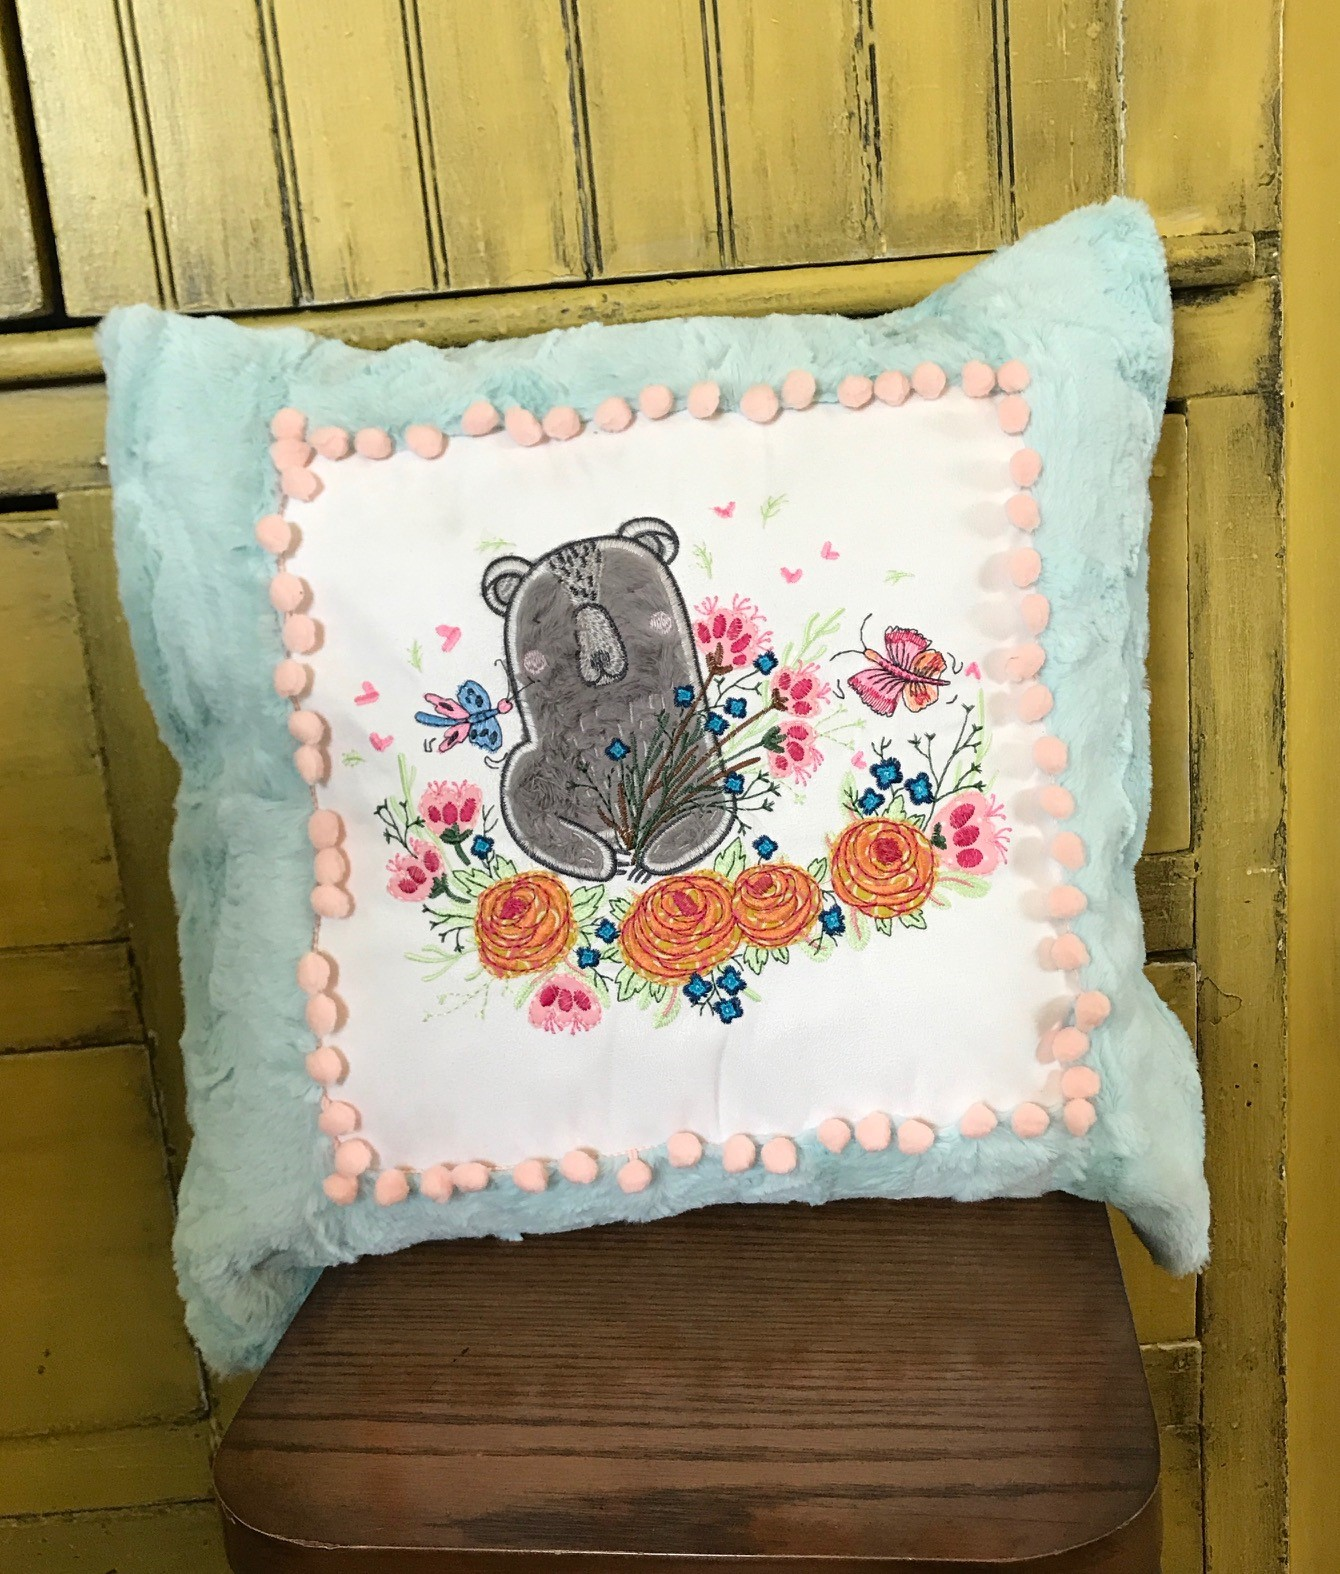 Luxe Cuddle Frame Pillow with bear